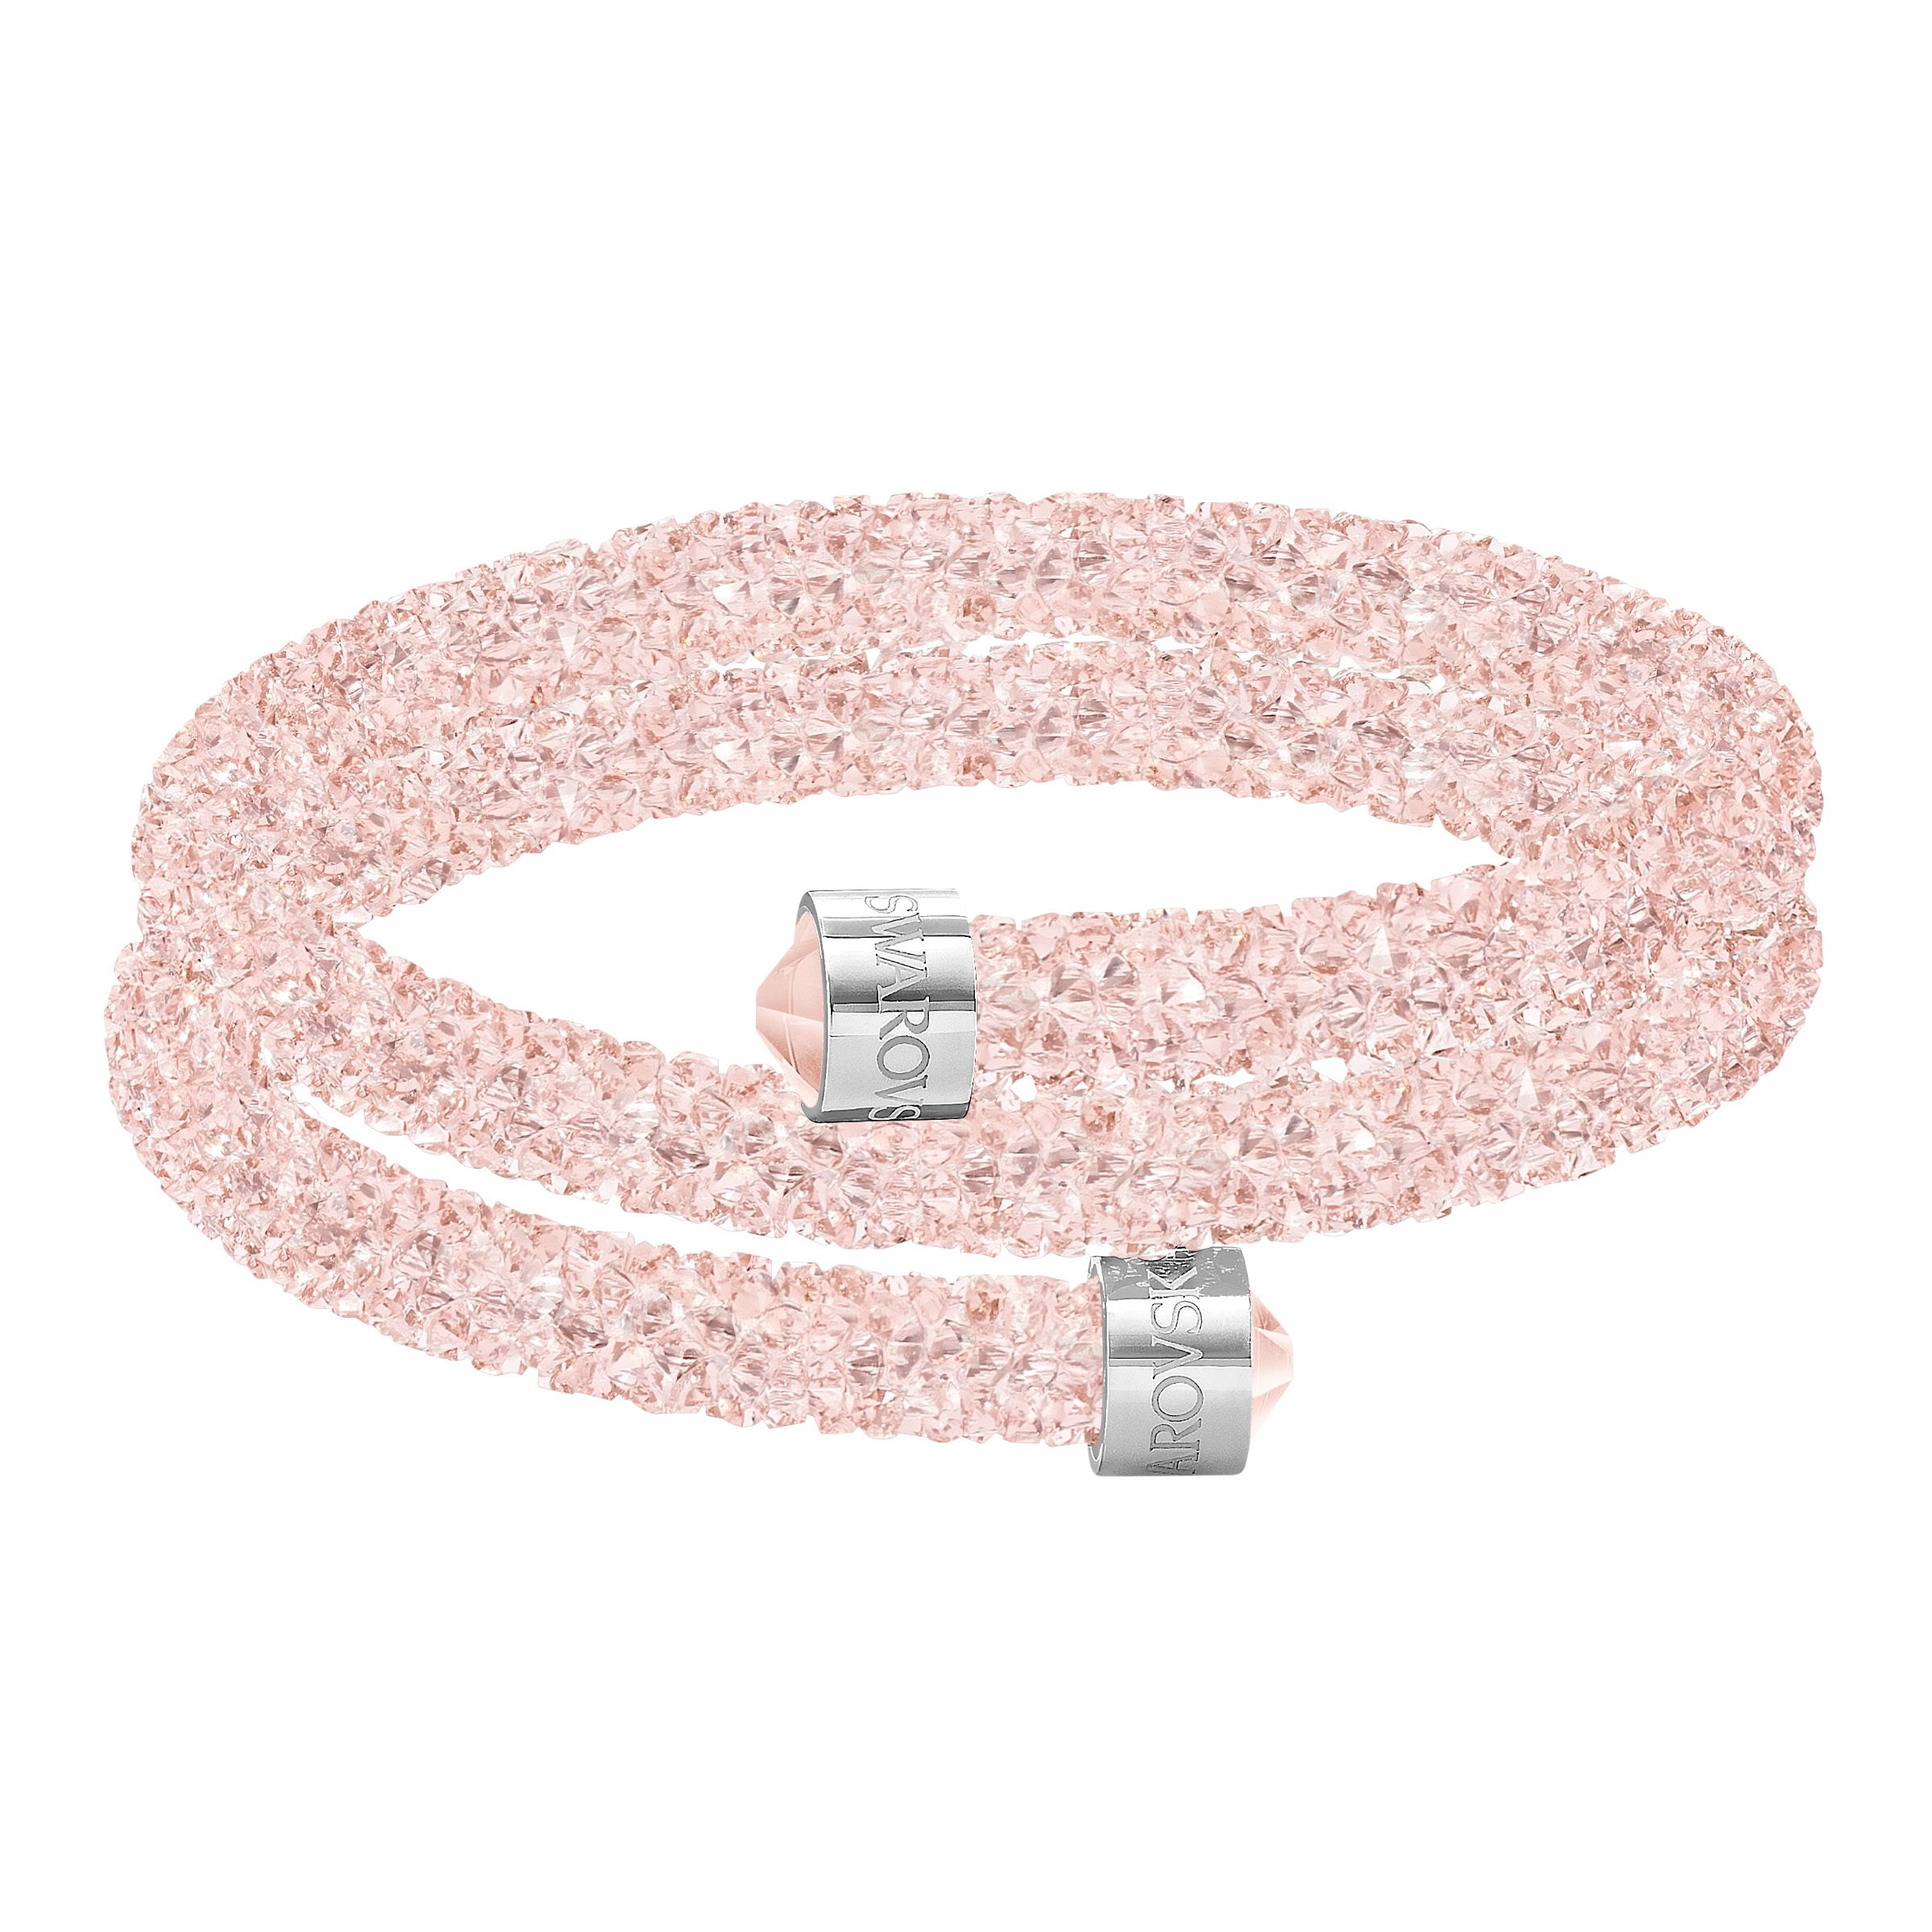 Swarovski Crystaldust double bangle, light pink, Pink